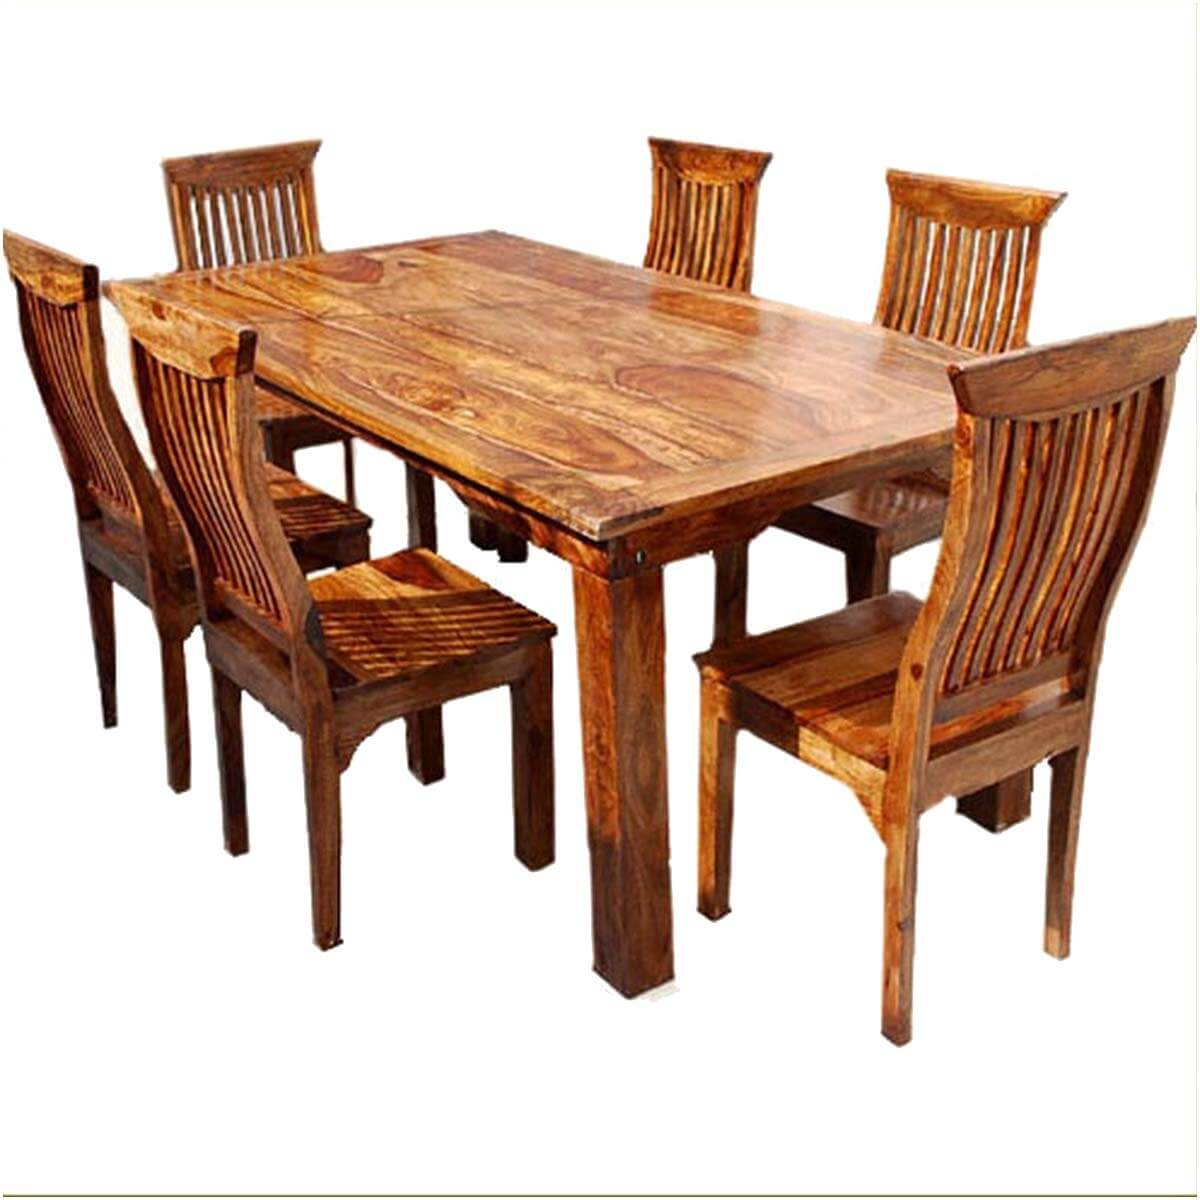 Dallas ranch solid wood rustic dining table chairs hutch set for Rustic dining room sets